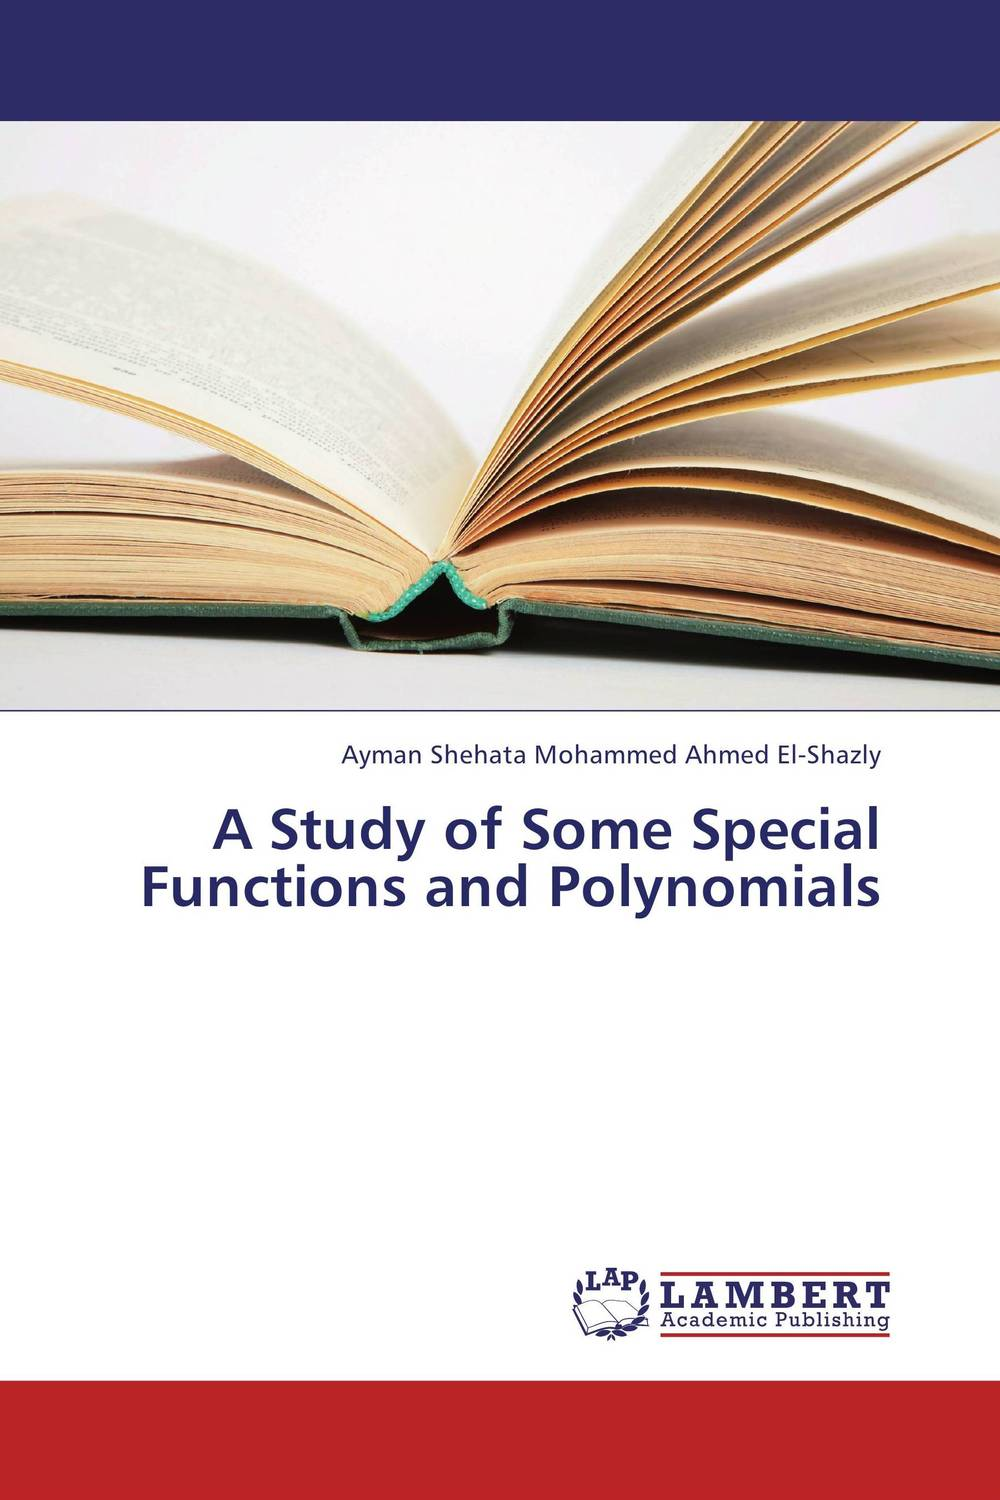 A Study of Some Special Functions and Polynomials